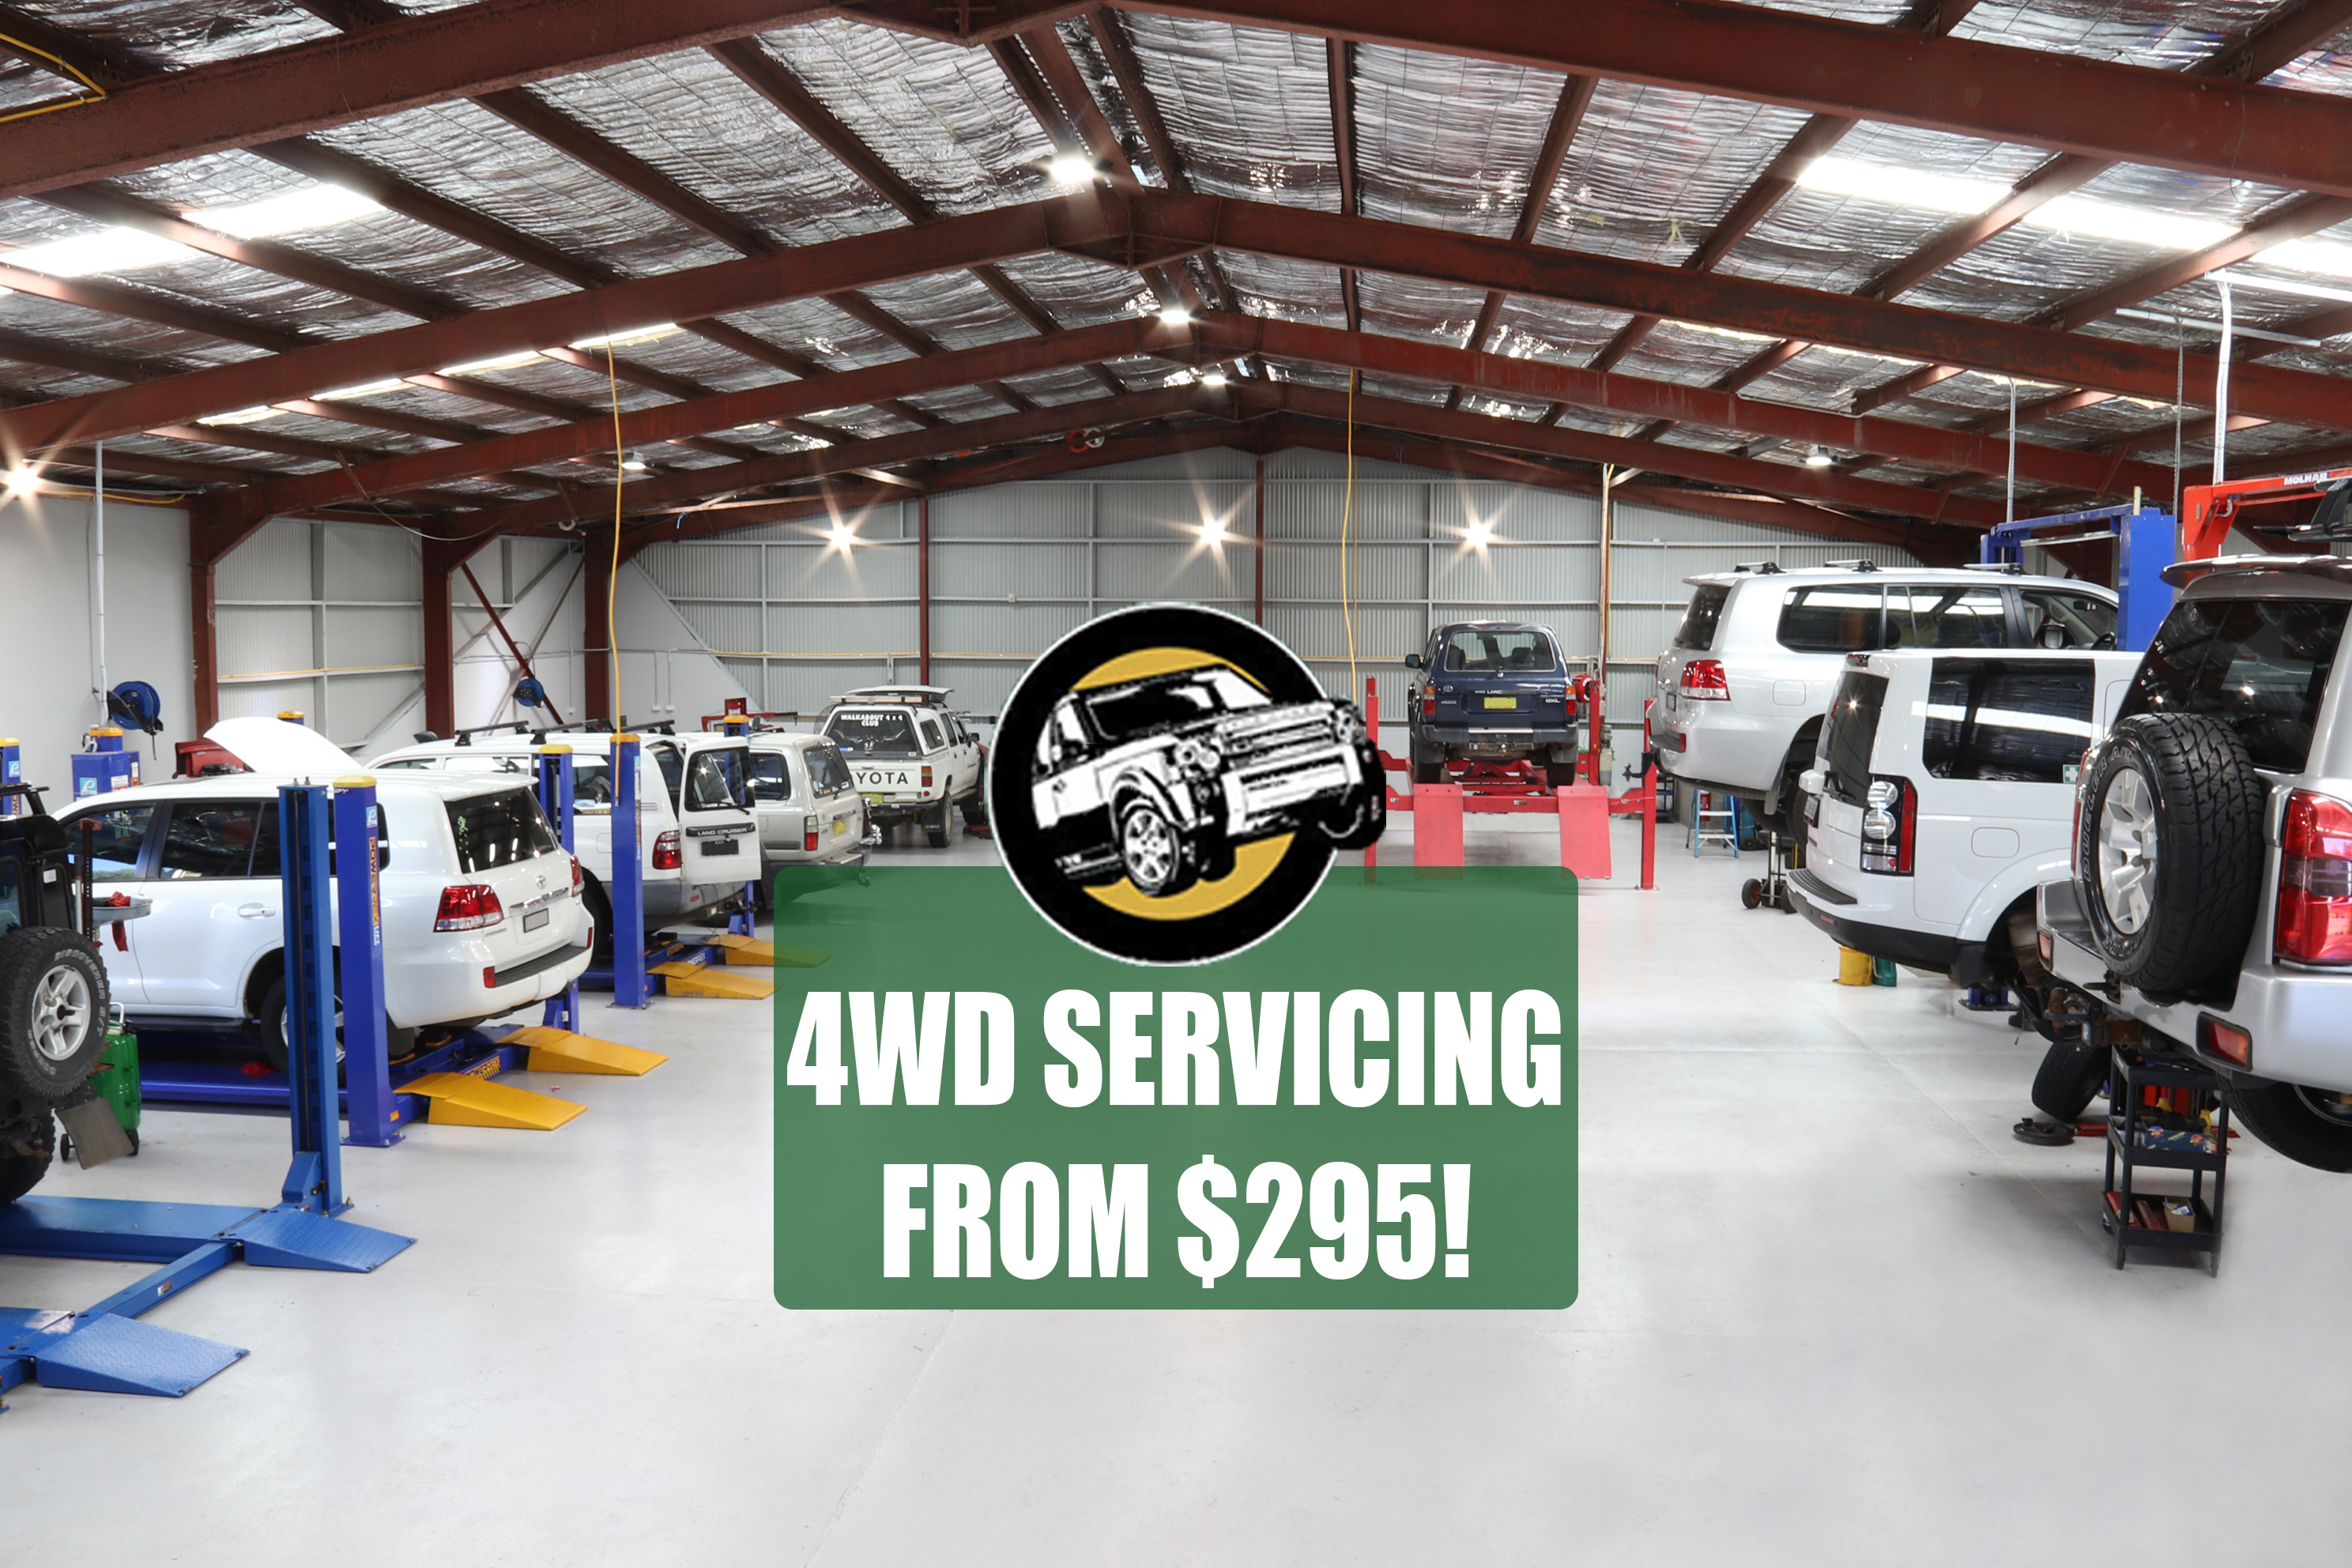 4wd_servicing_from_295